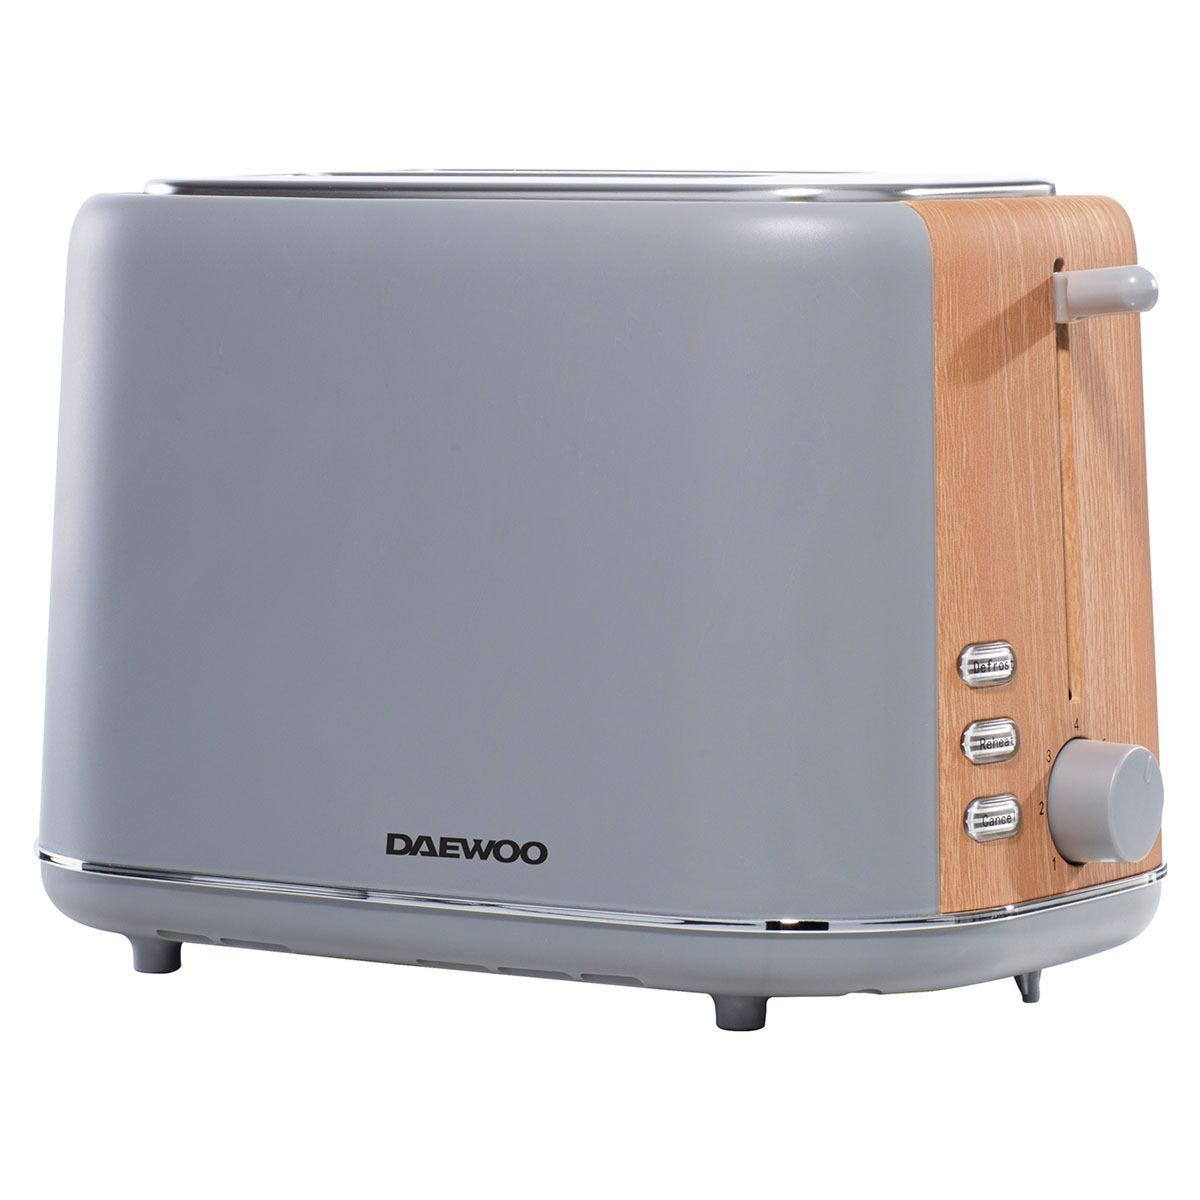 Daewoo SDA1737 800W Stockholm 2–Slice Toaster with Wood Effect – Grey